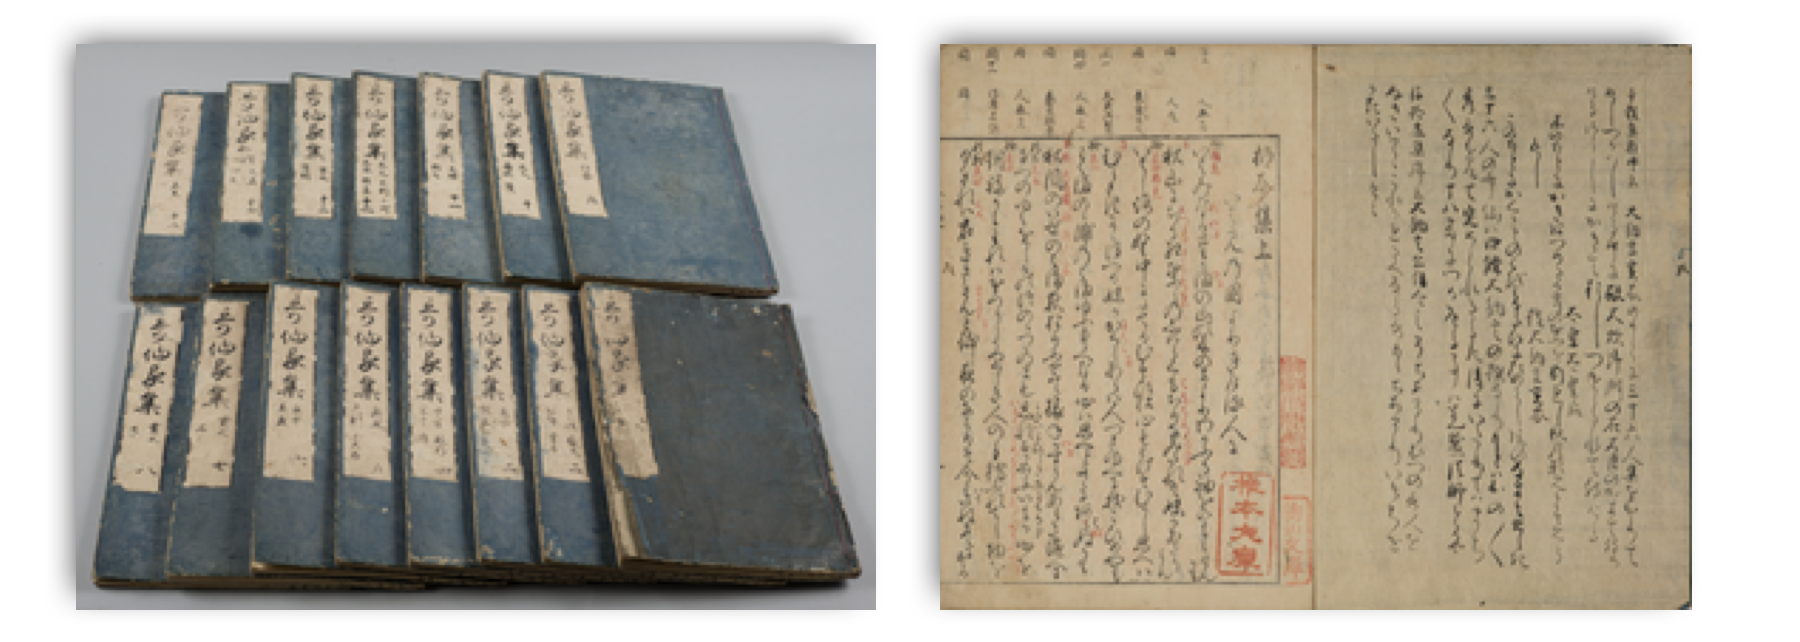 Kasen kashū (Poetry Collections of the Immortal Poets) with marginalia by Keichū, Shiigamoto bunko